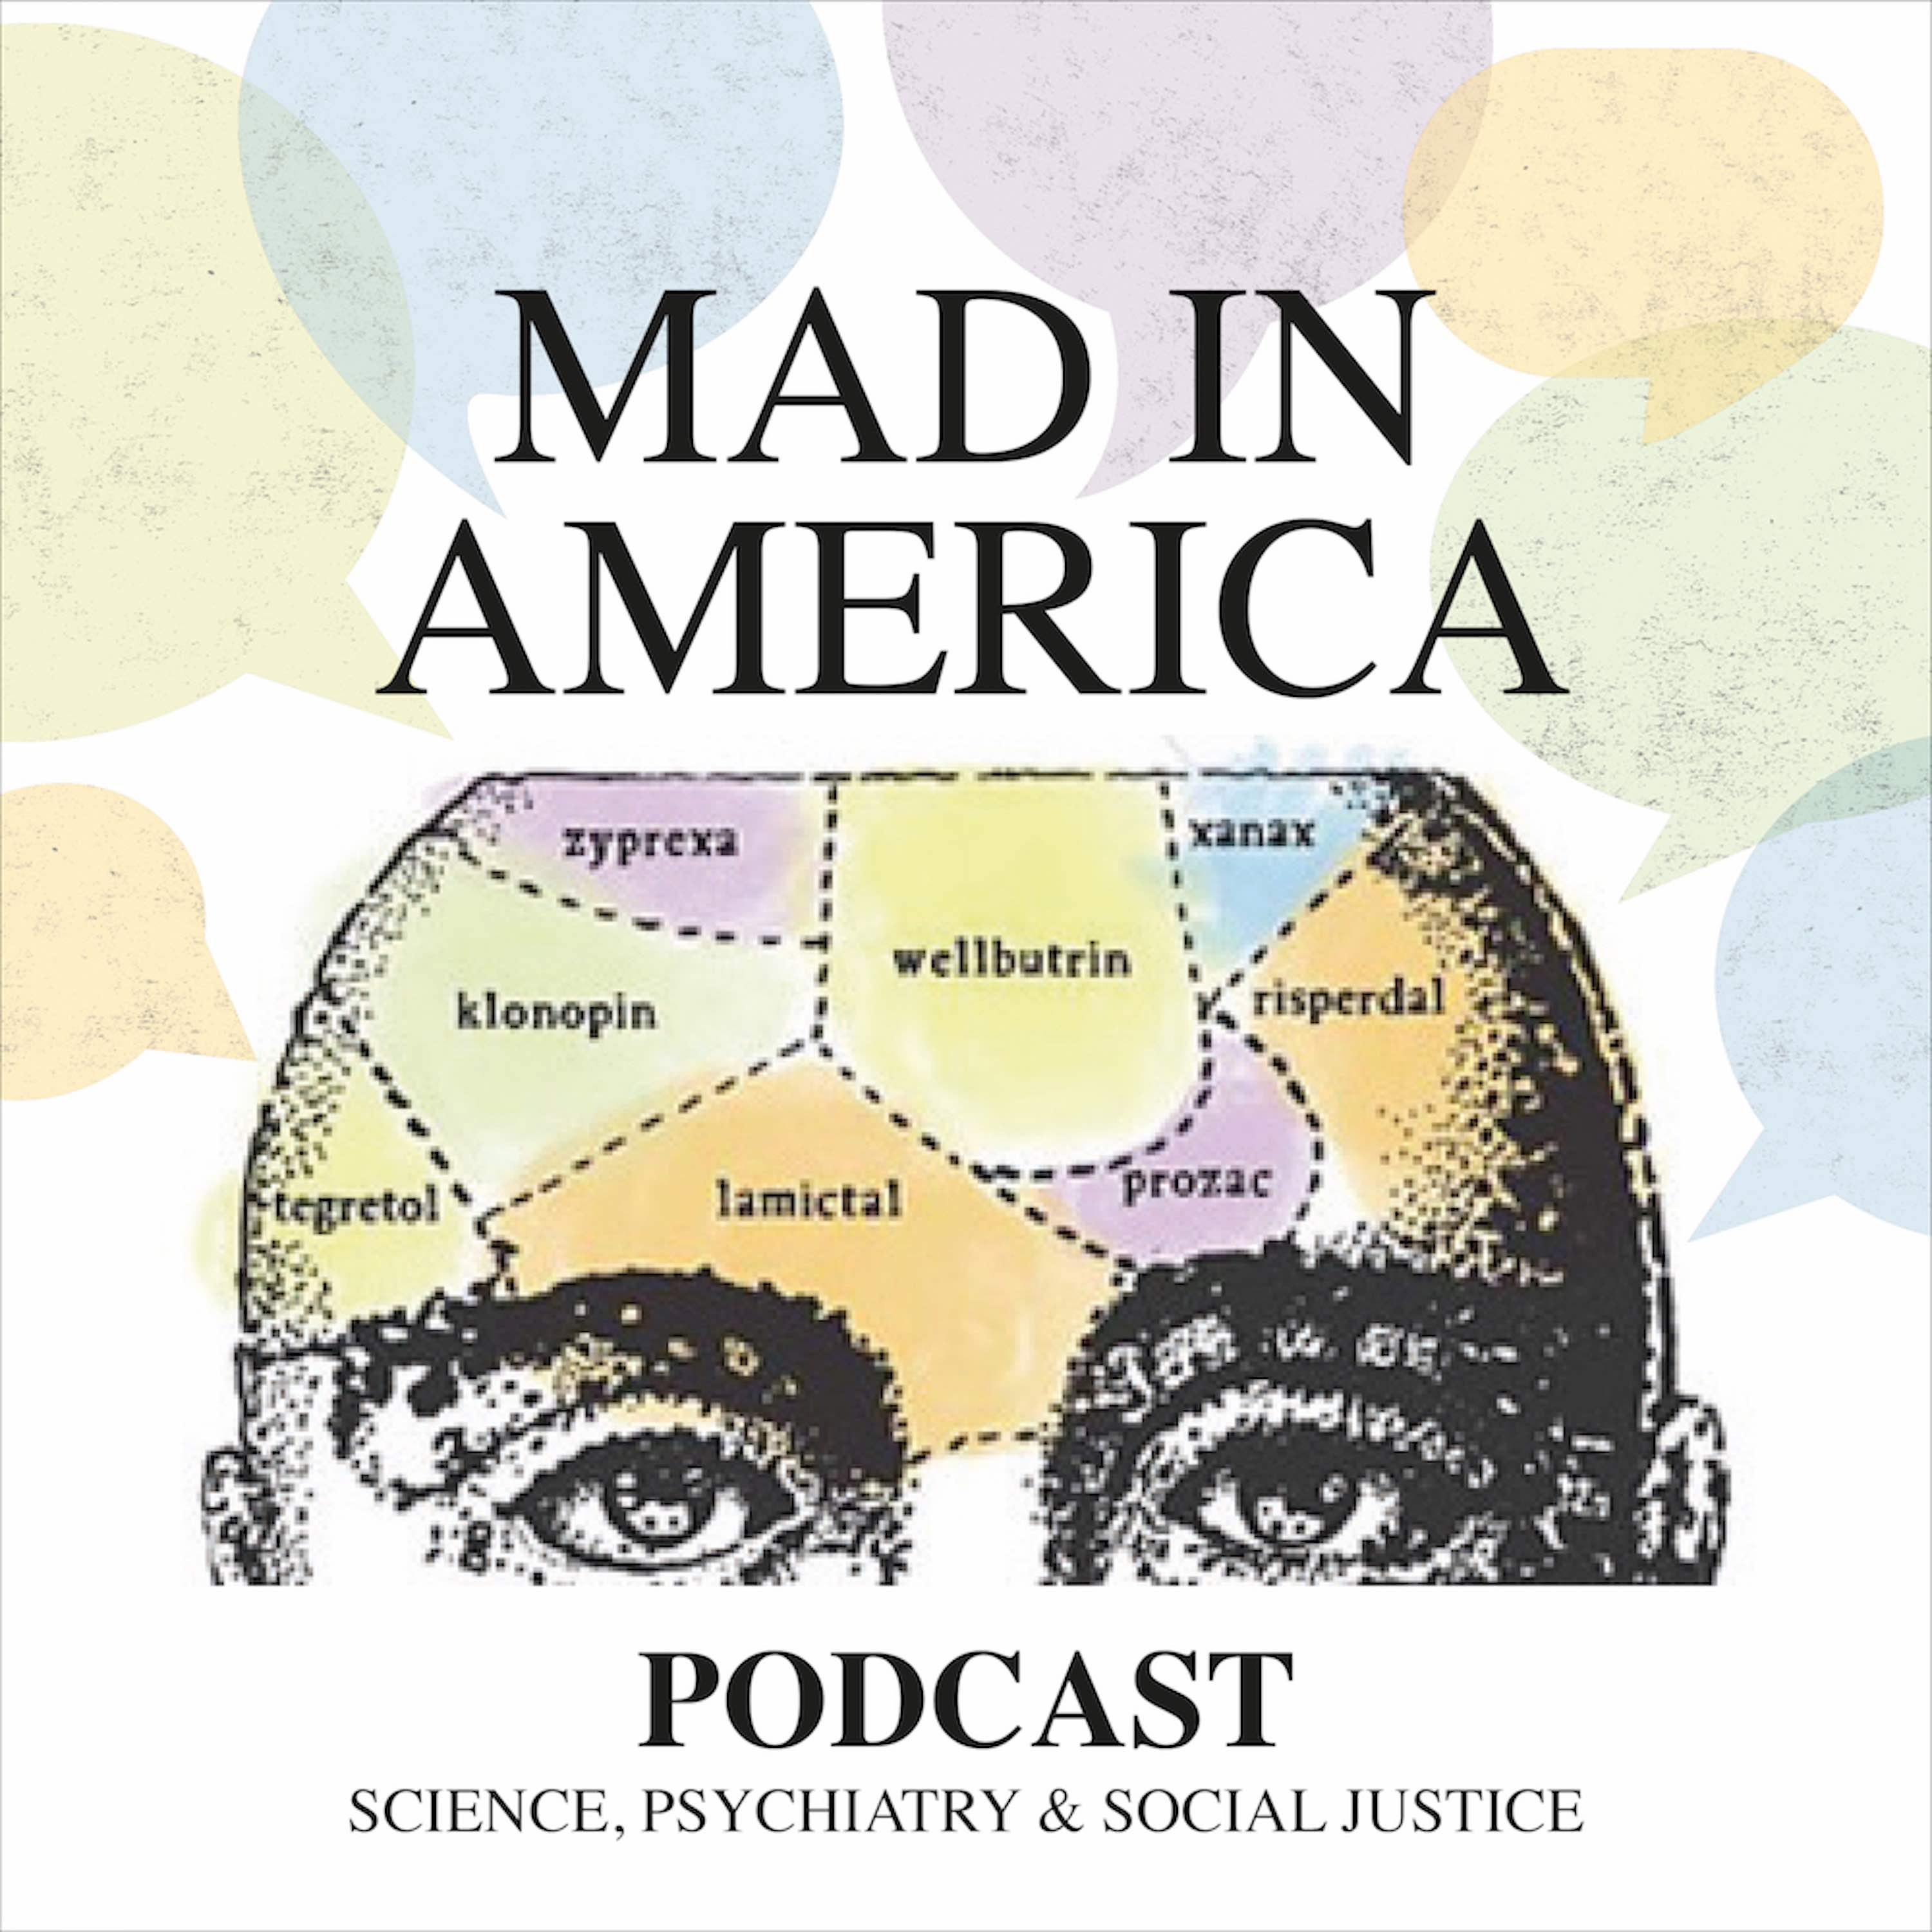 Mad in America: Rethinking Mental Health - Lucy Johnstone - The Creation of a Conceptual Alternative to the DSM